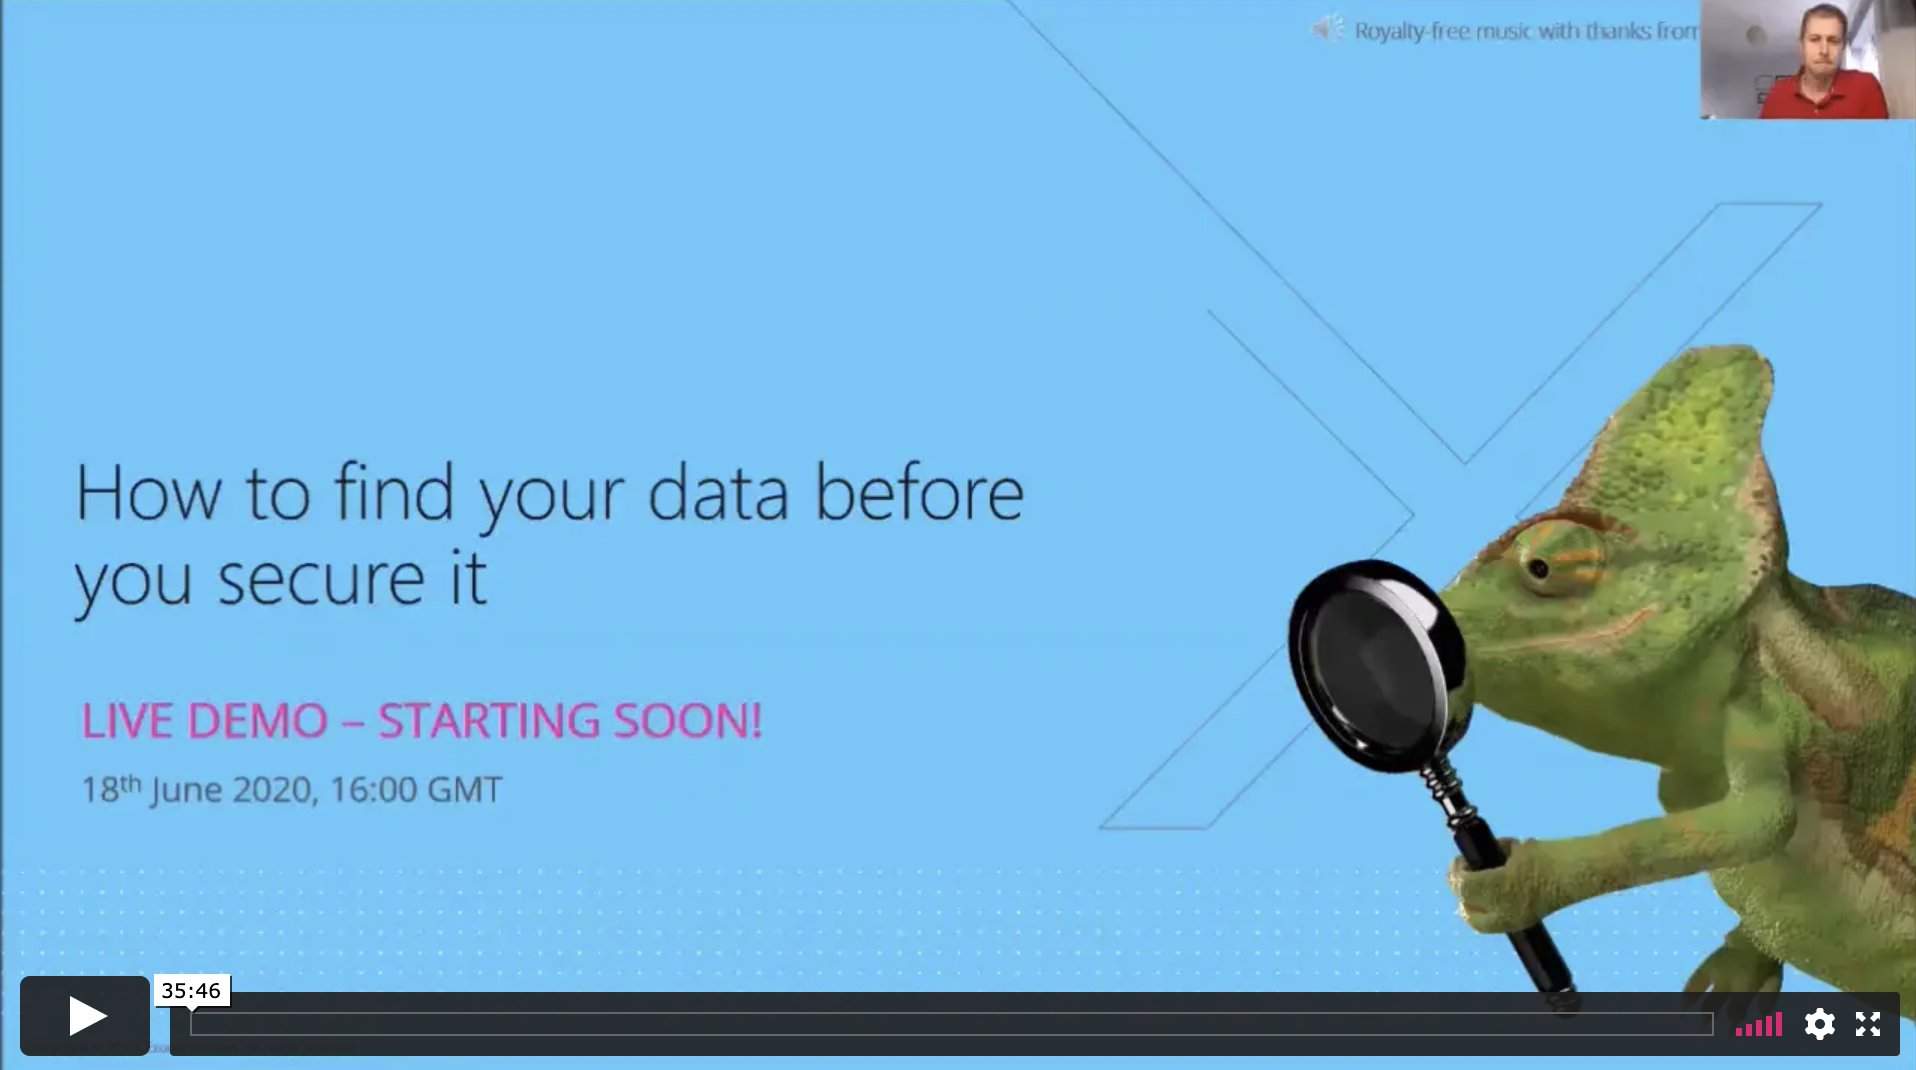 How to find your data